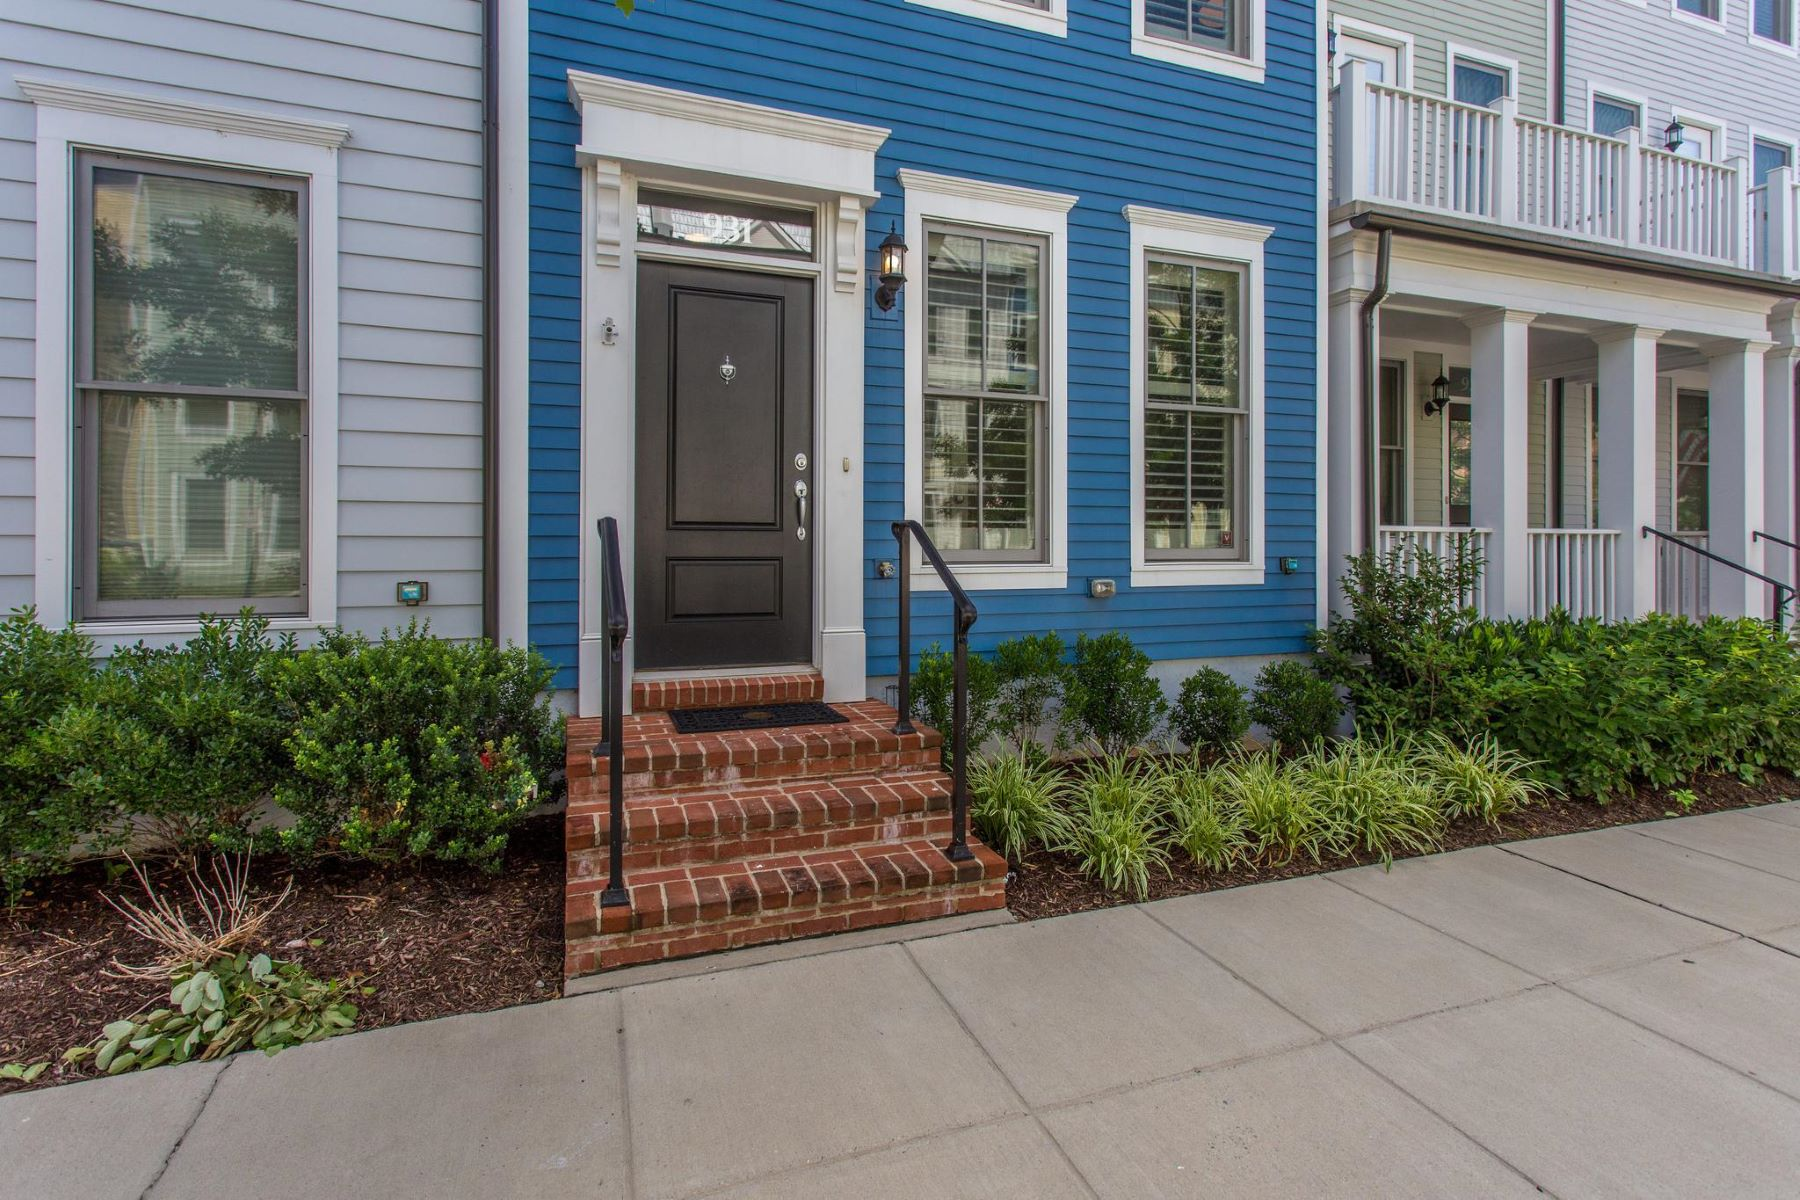 Townhouse for Sale at 931 Alfred St N 931 Alfred St N Alexandria, Virginia 22314 United States